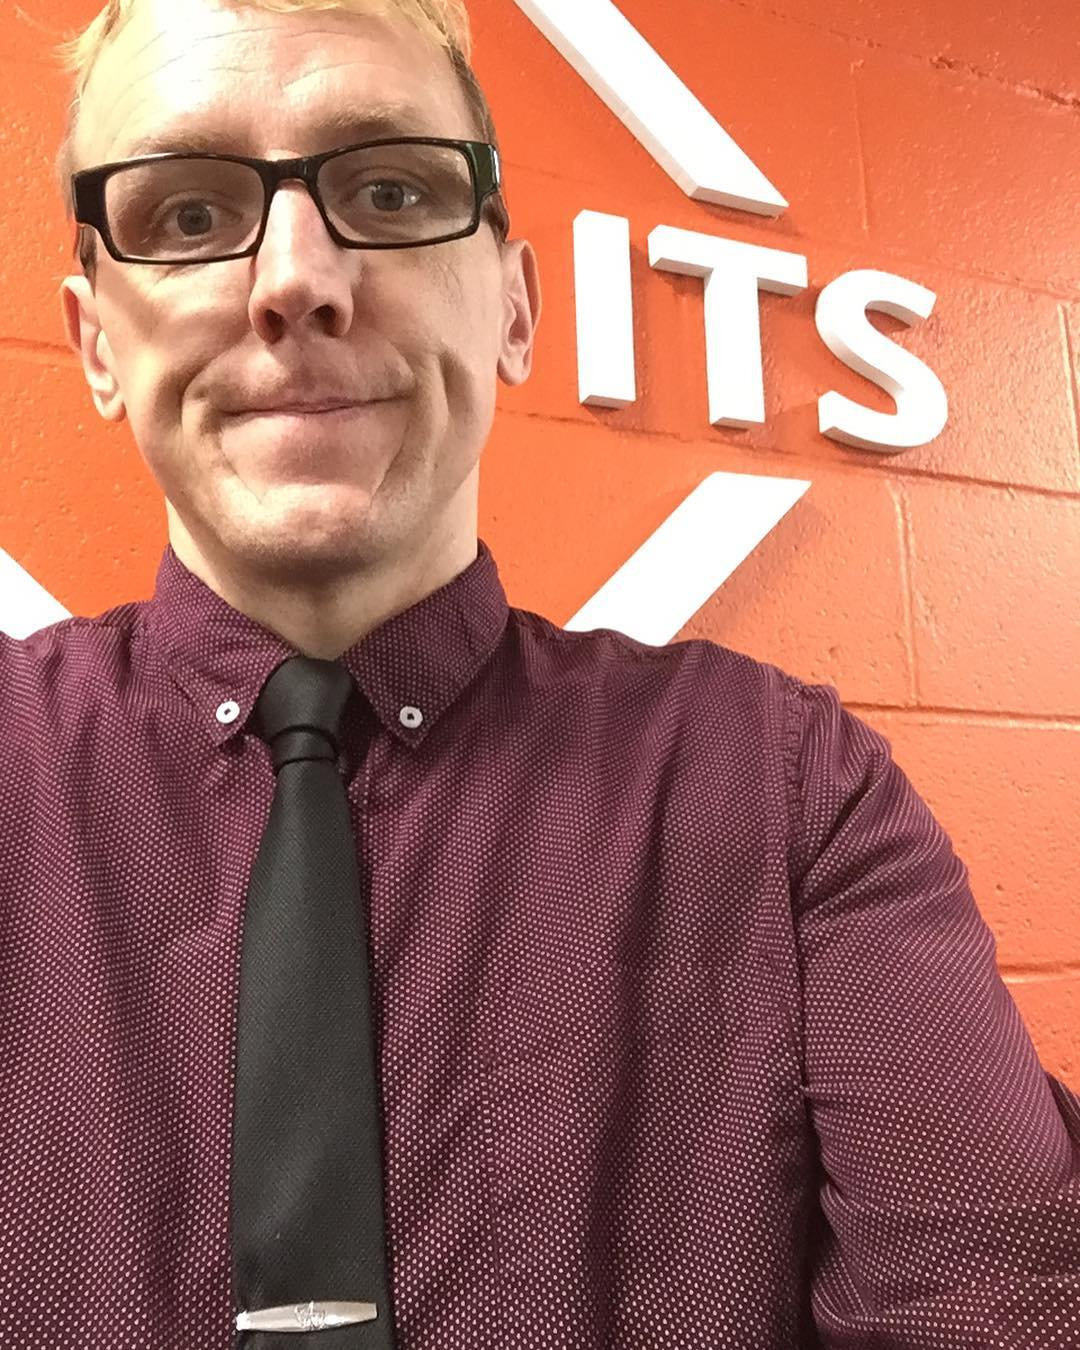 Fun first week @wildcattech so broke out #vanwijk knot for first #tiedayfriday @davidsoncollege #ftw